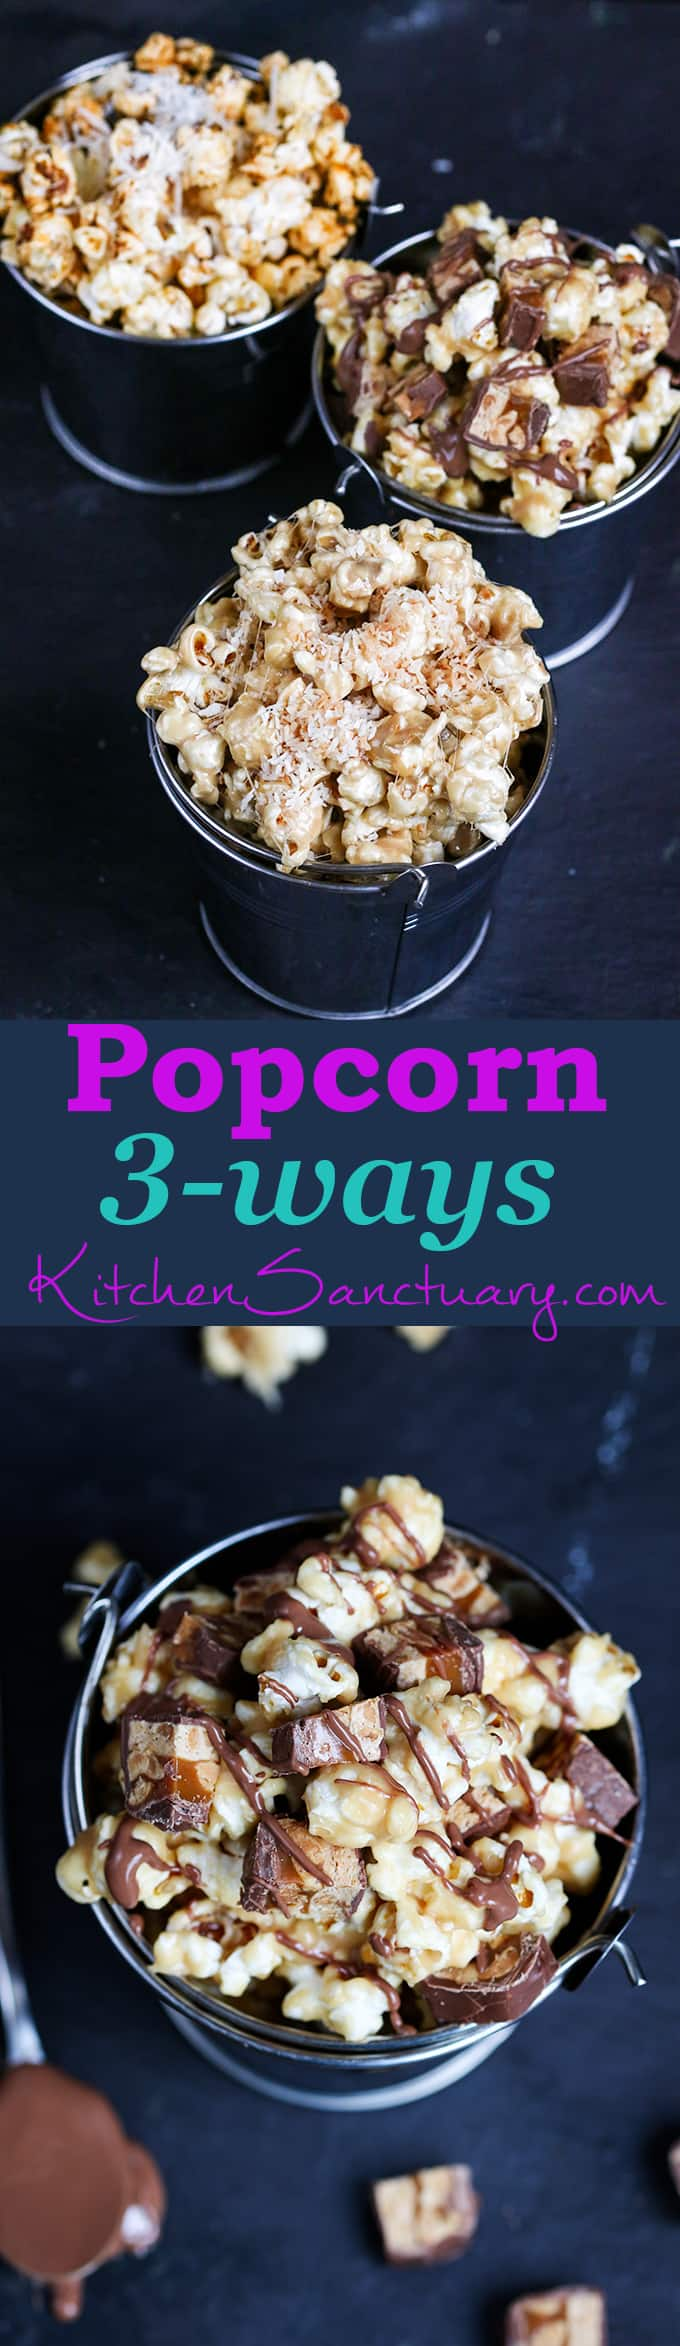 Popcorn 3-ways - Snickers, Marshmallow & Coconut and Savoury Spice.